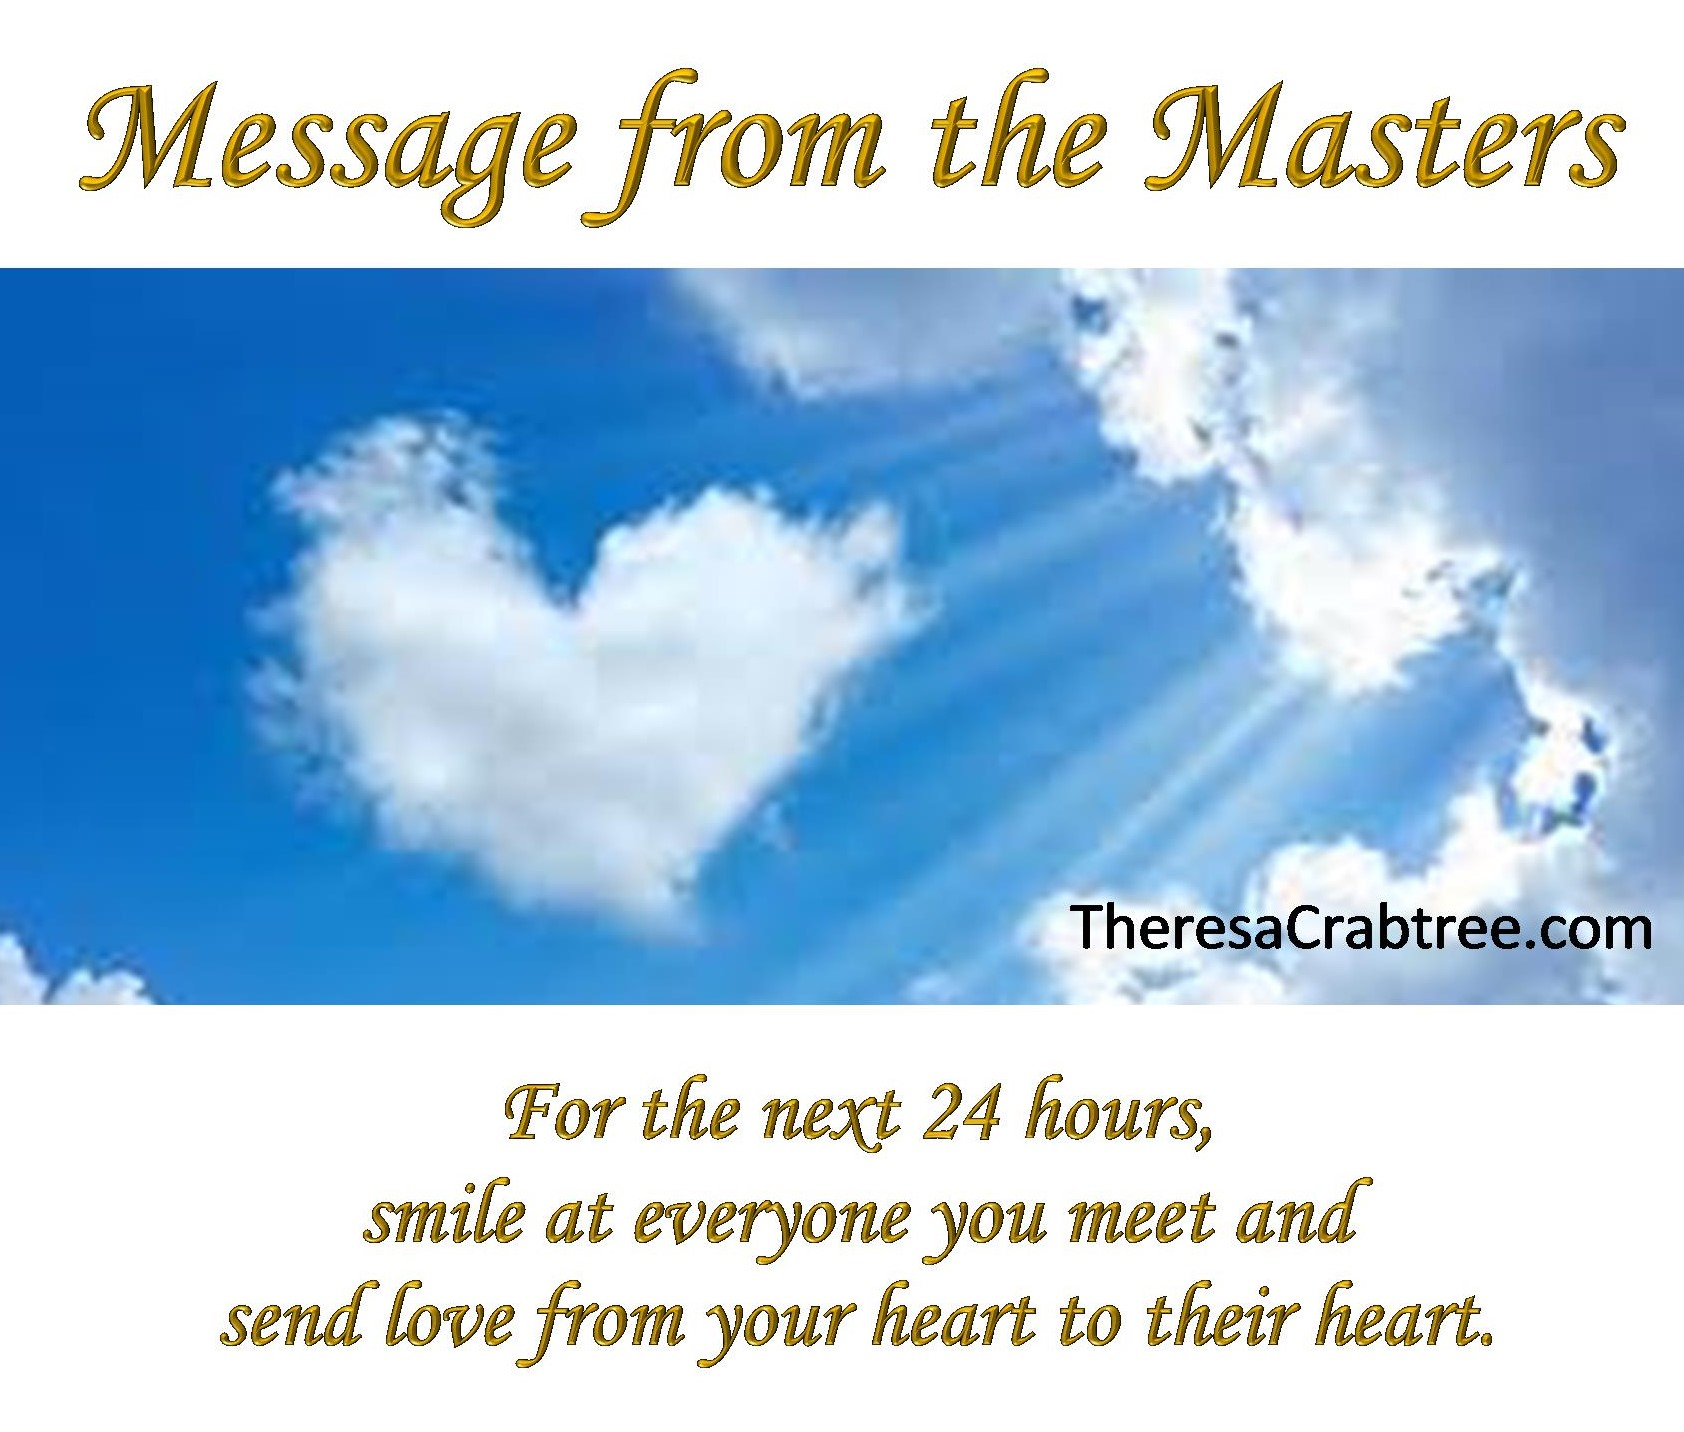 Message from the Masters